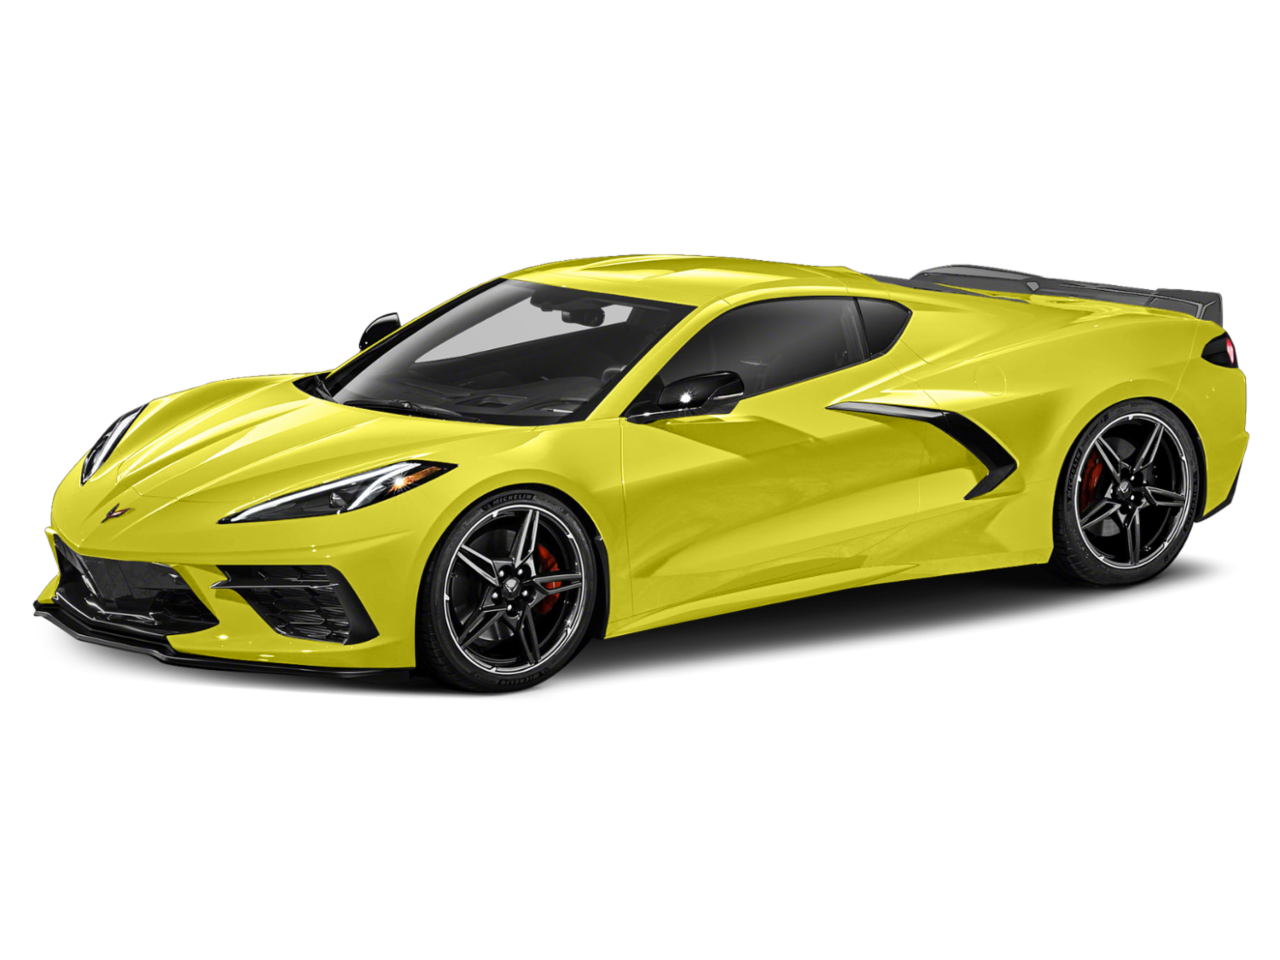 Chevrolet 2020 Corvette 2LT